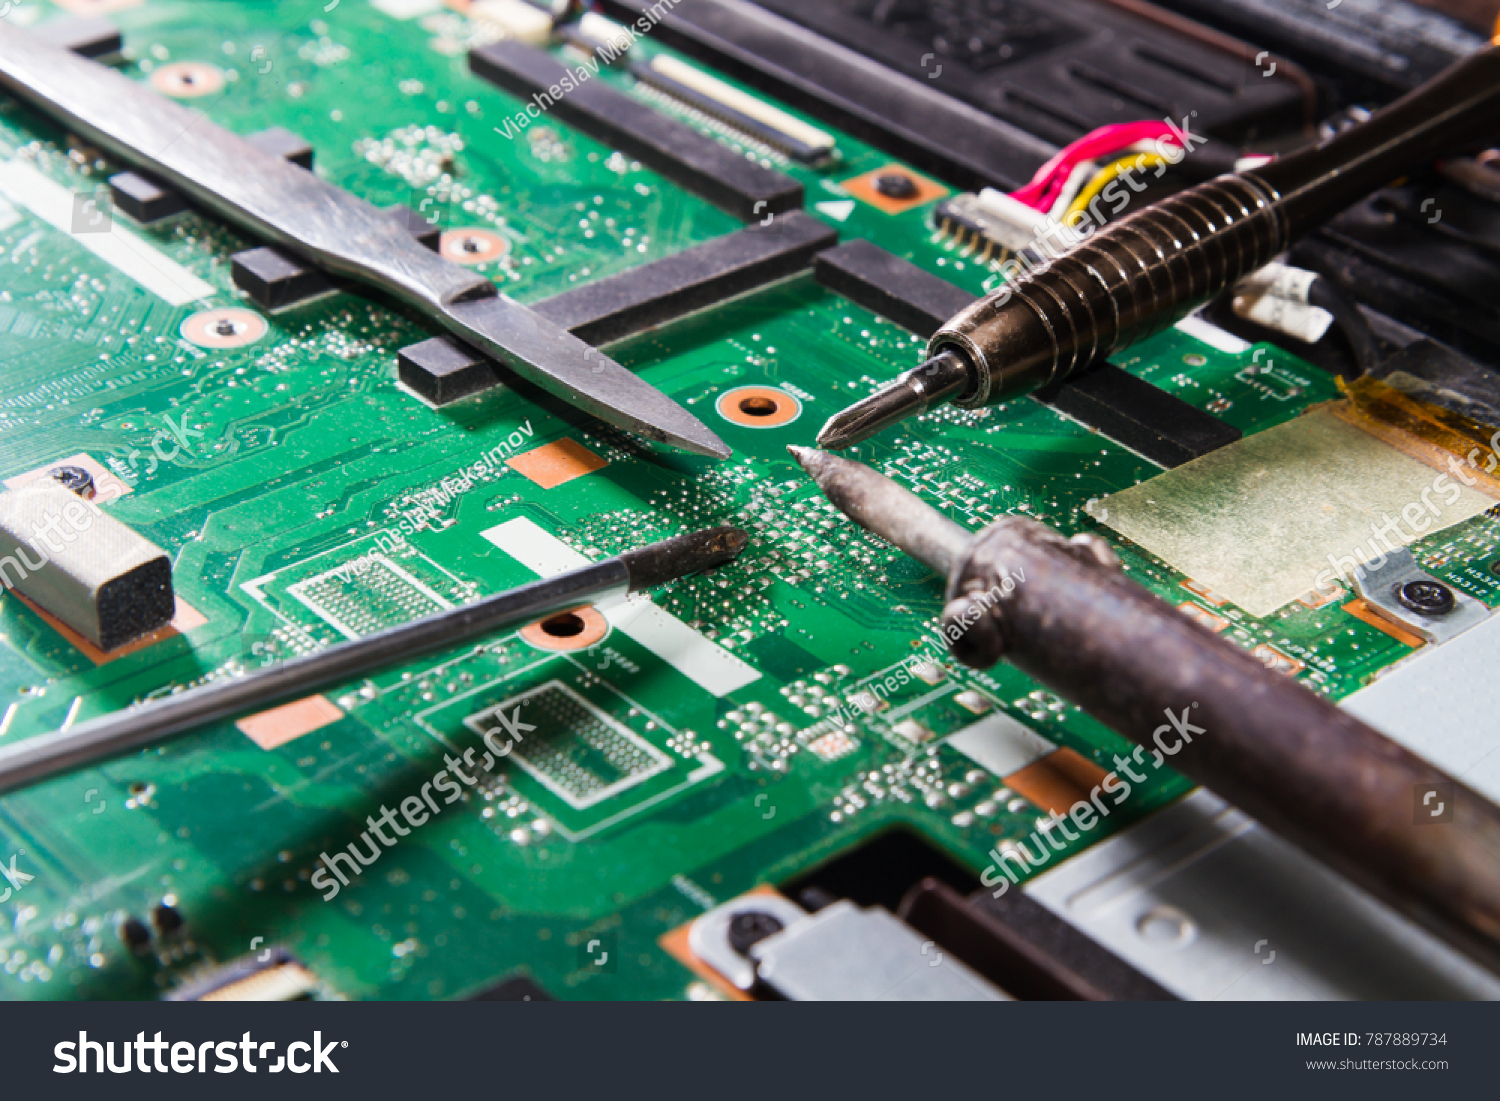 Printed Circuit Board Tools Green Screwdriver Stock Photo Edit Now Photos Images Pictures Shutterstock With Soldering Iron Knife Close Up